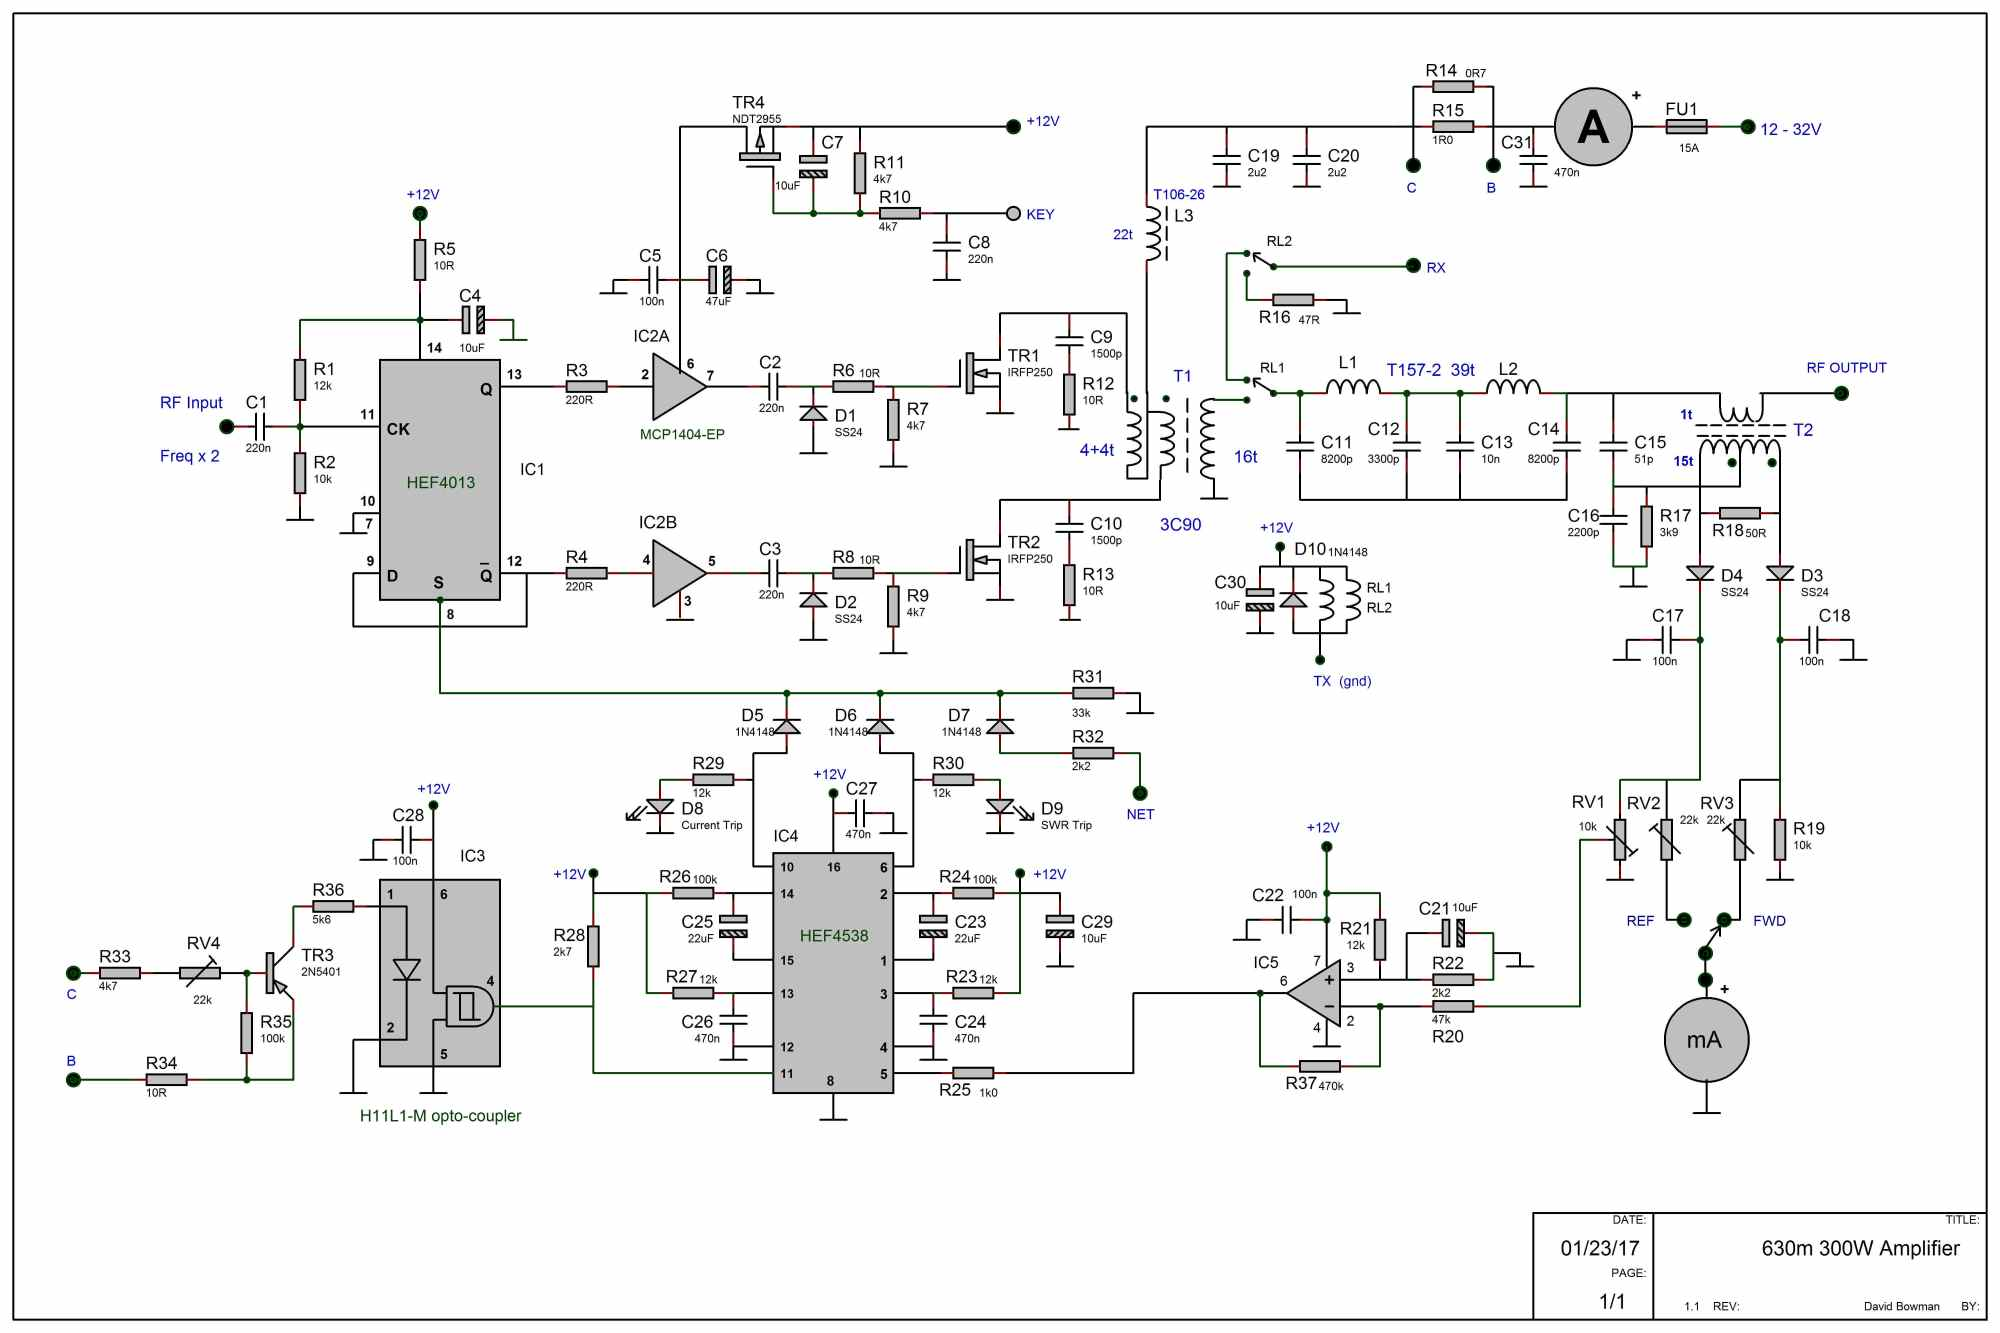 hight resolution of 630m amplifier circuit diagram